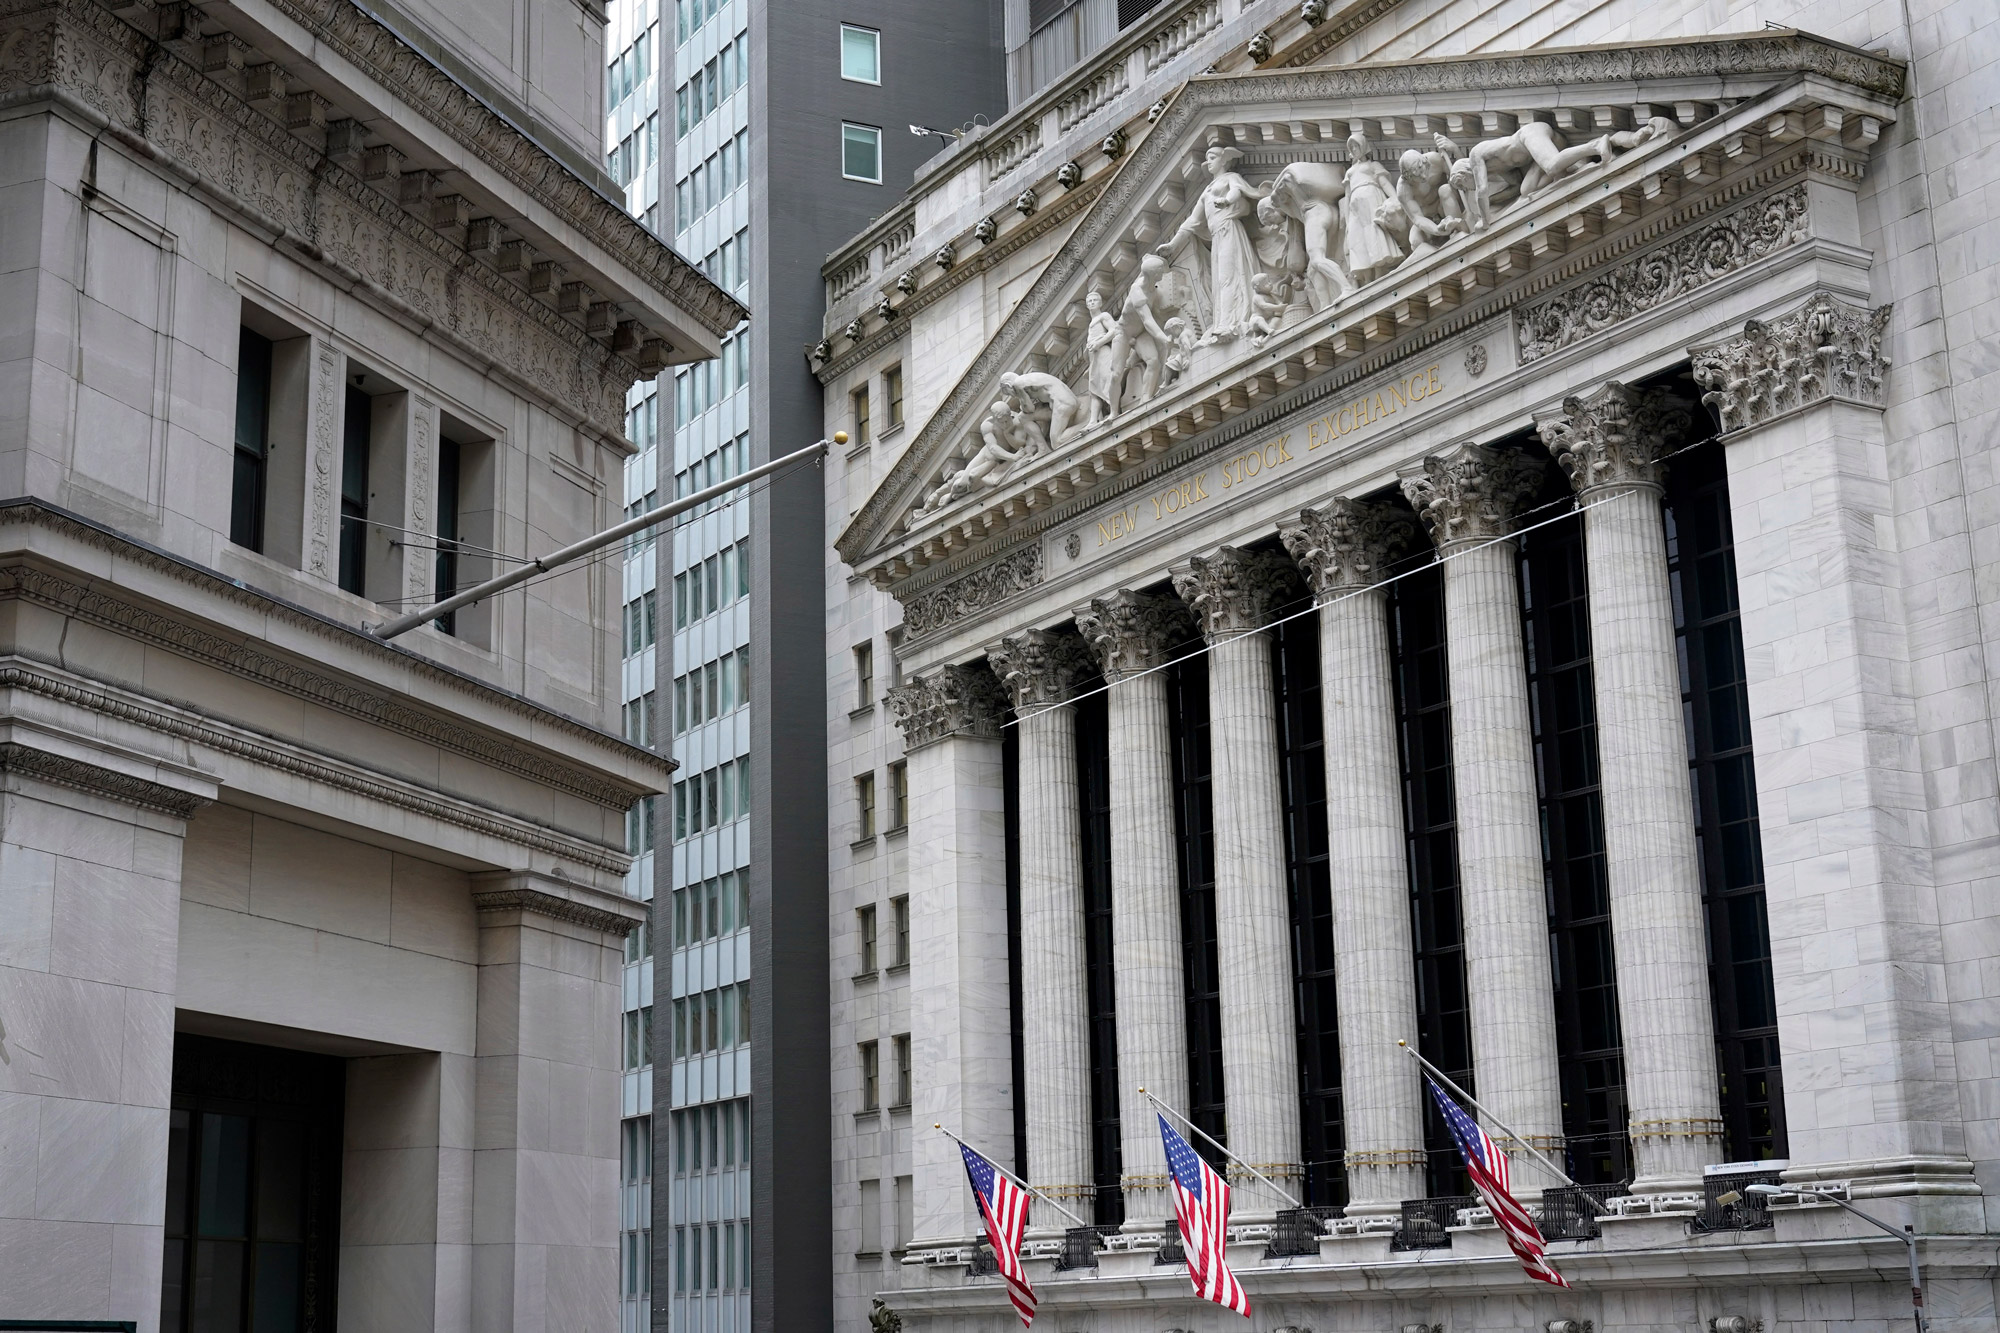 The New York Stock Exchange is seen in New York on November 23.